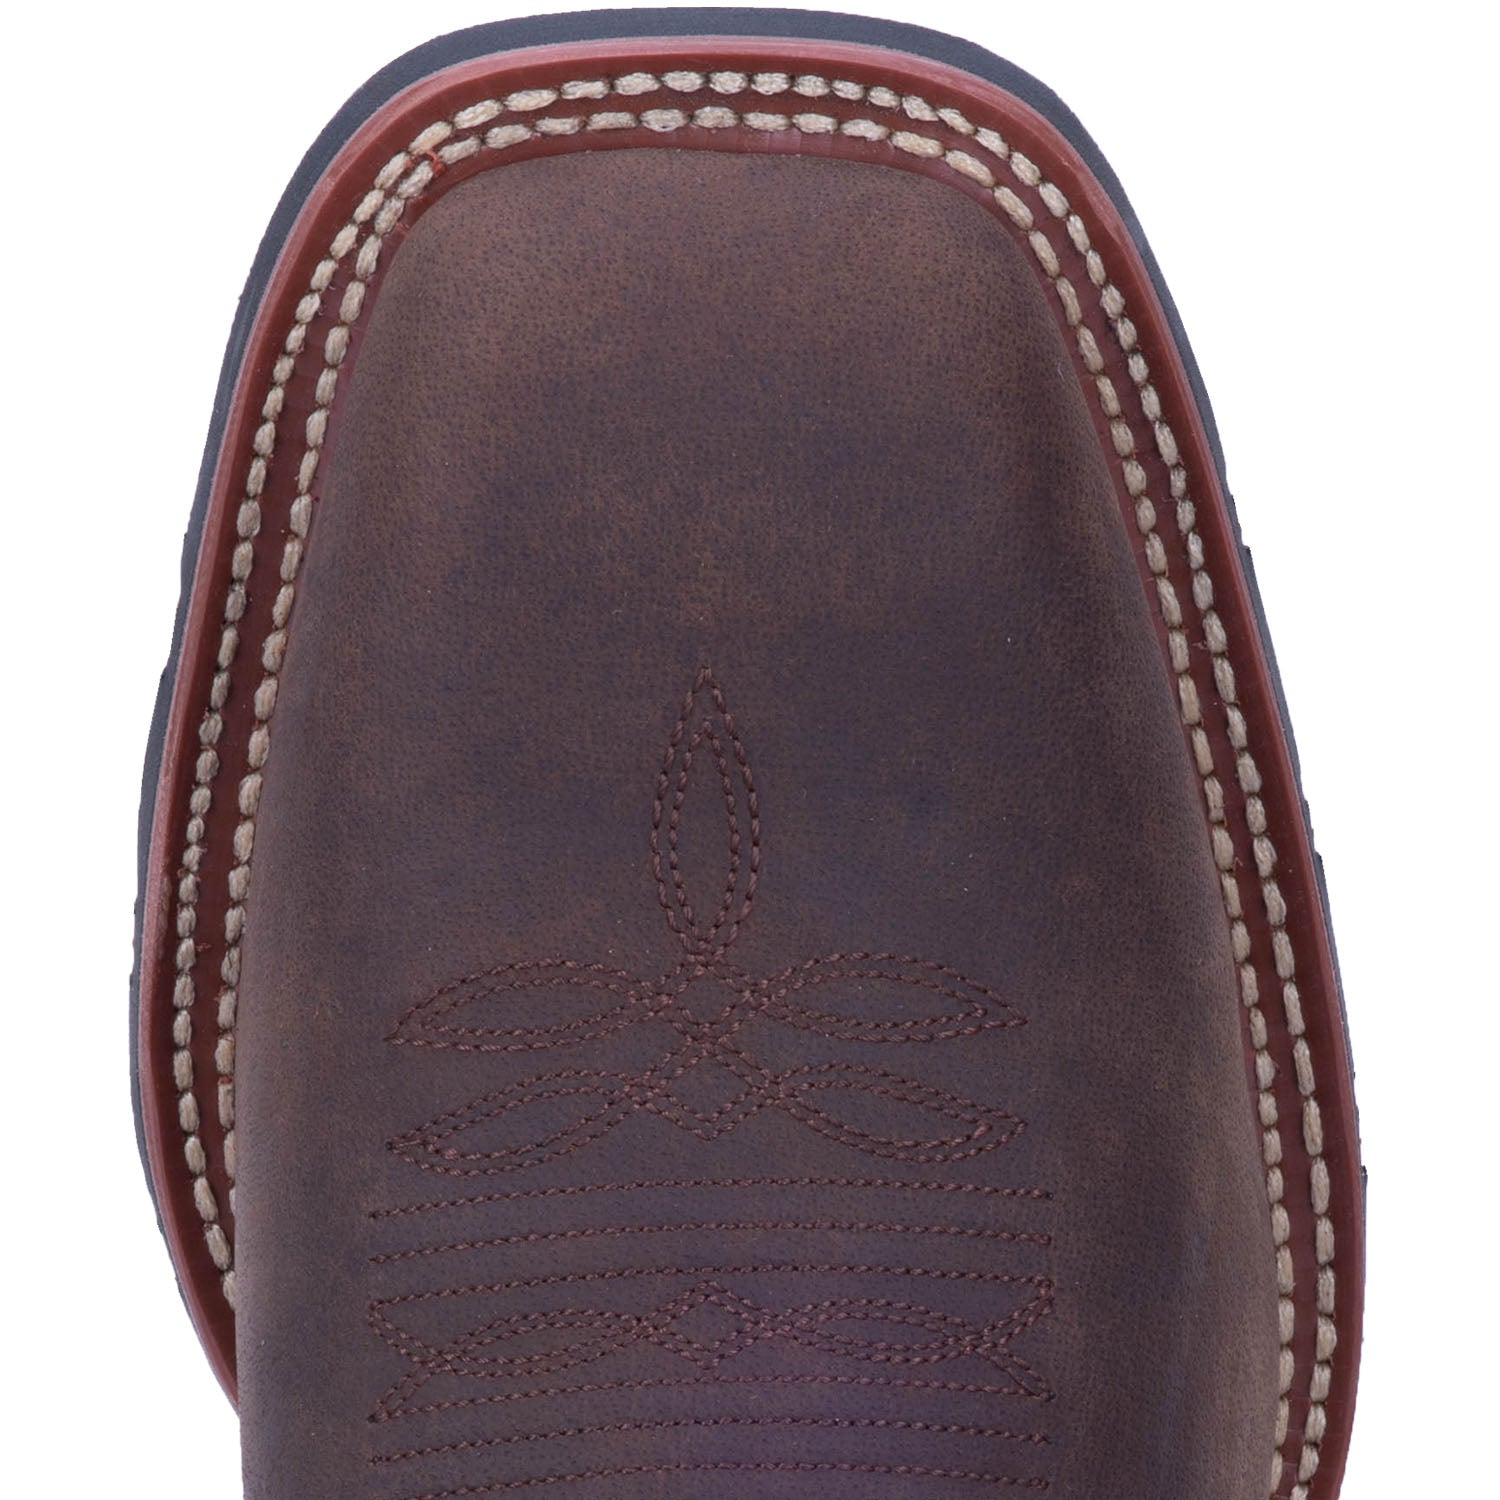 HAMILTON LEATHER BOOT - Dan Post Boots